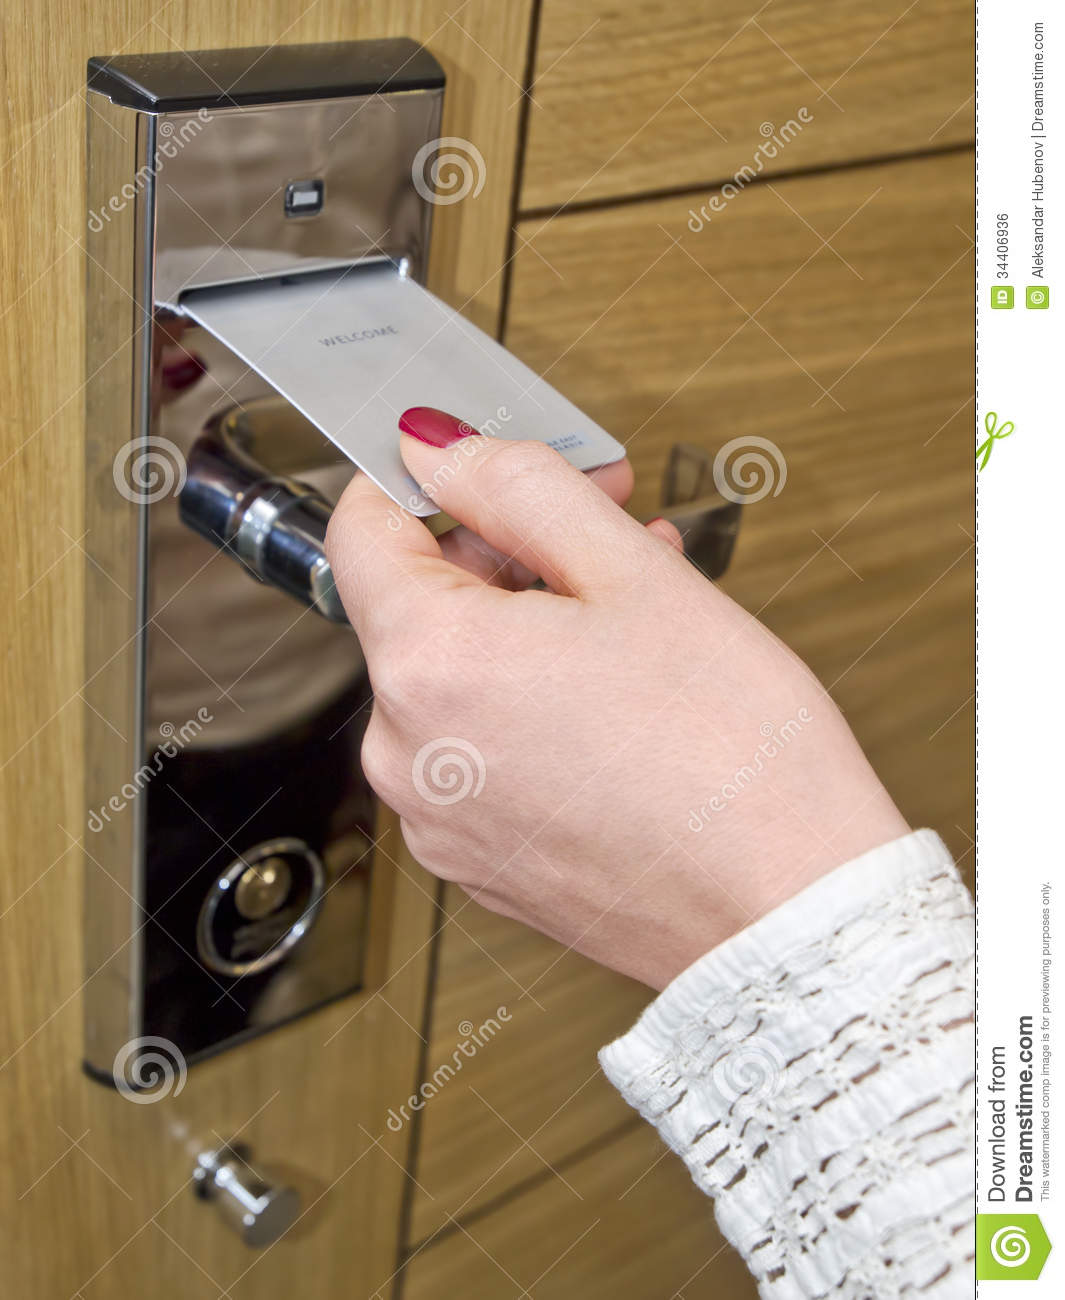 Hotel door - woman's hand inserting key card in an electronic lock.